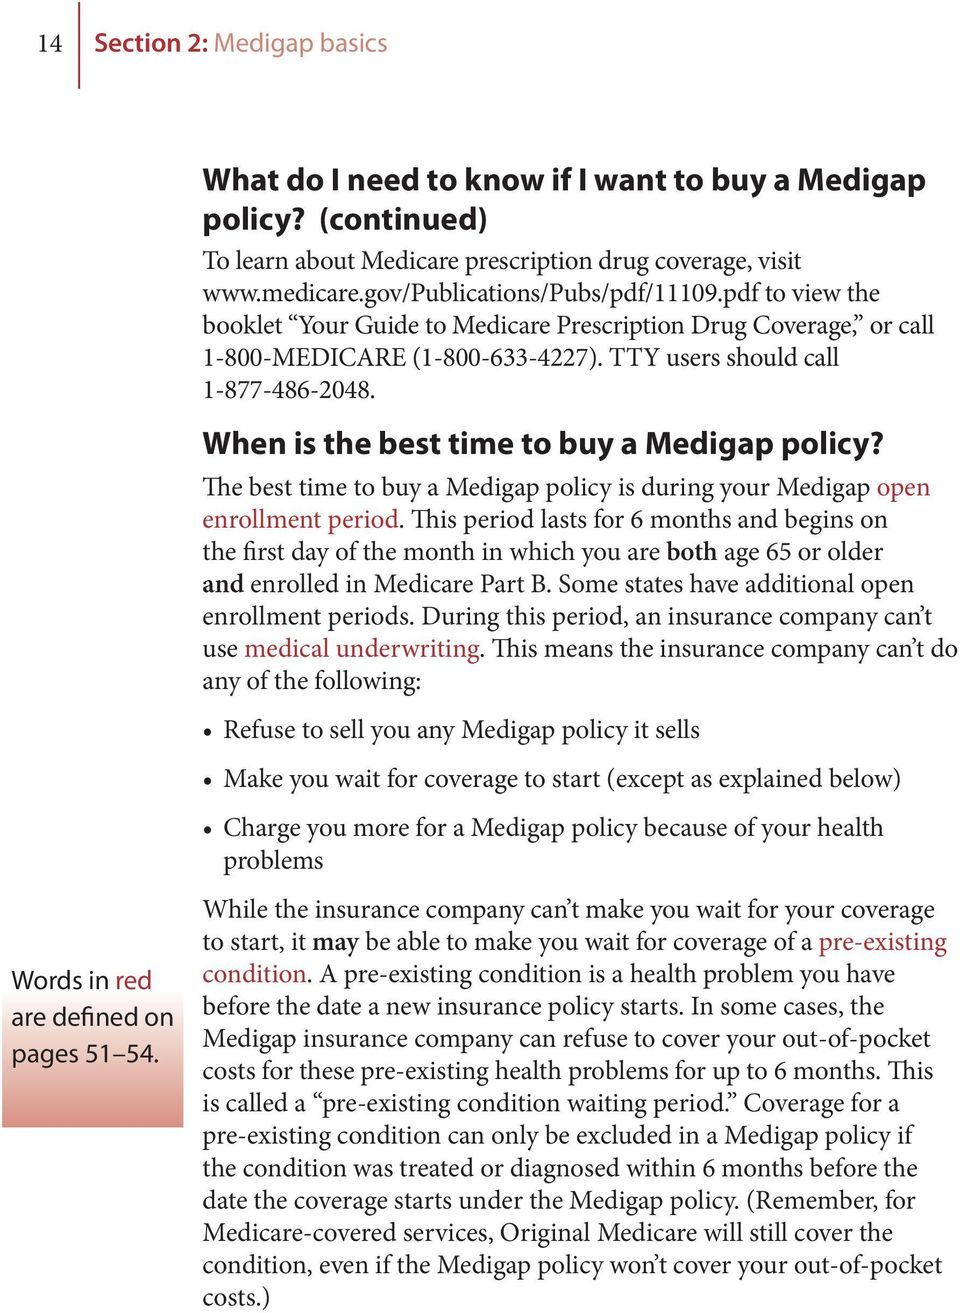 When is the best time to buy a Medigap policy? The best time to buy